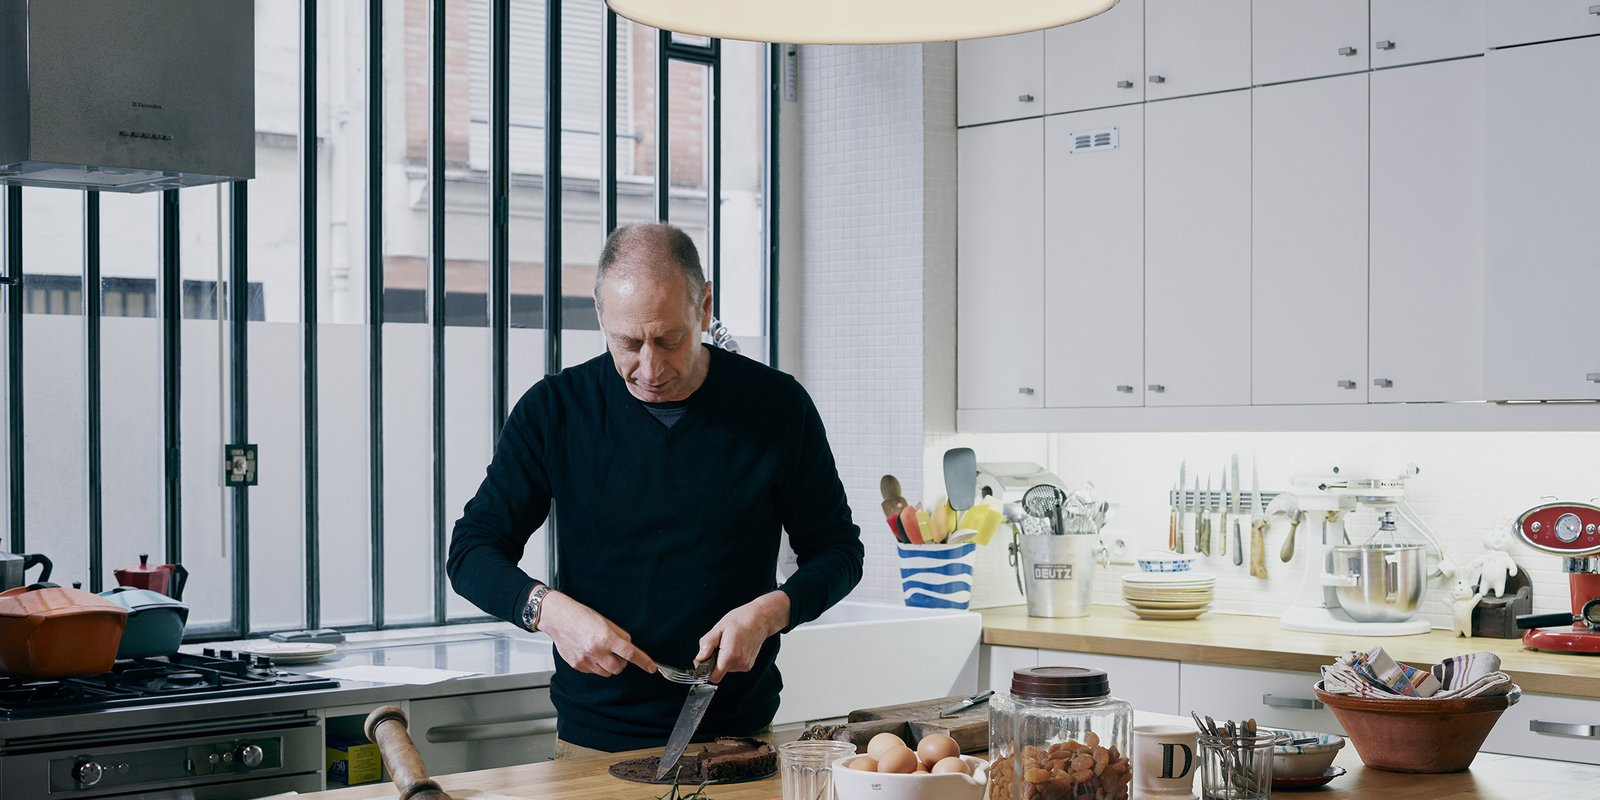 Kitchens We Love: Blogger, Cookbook Writer, and Pastry Chef David Lebovitz's Paris Kitchen